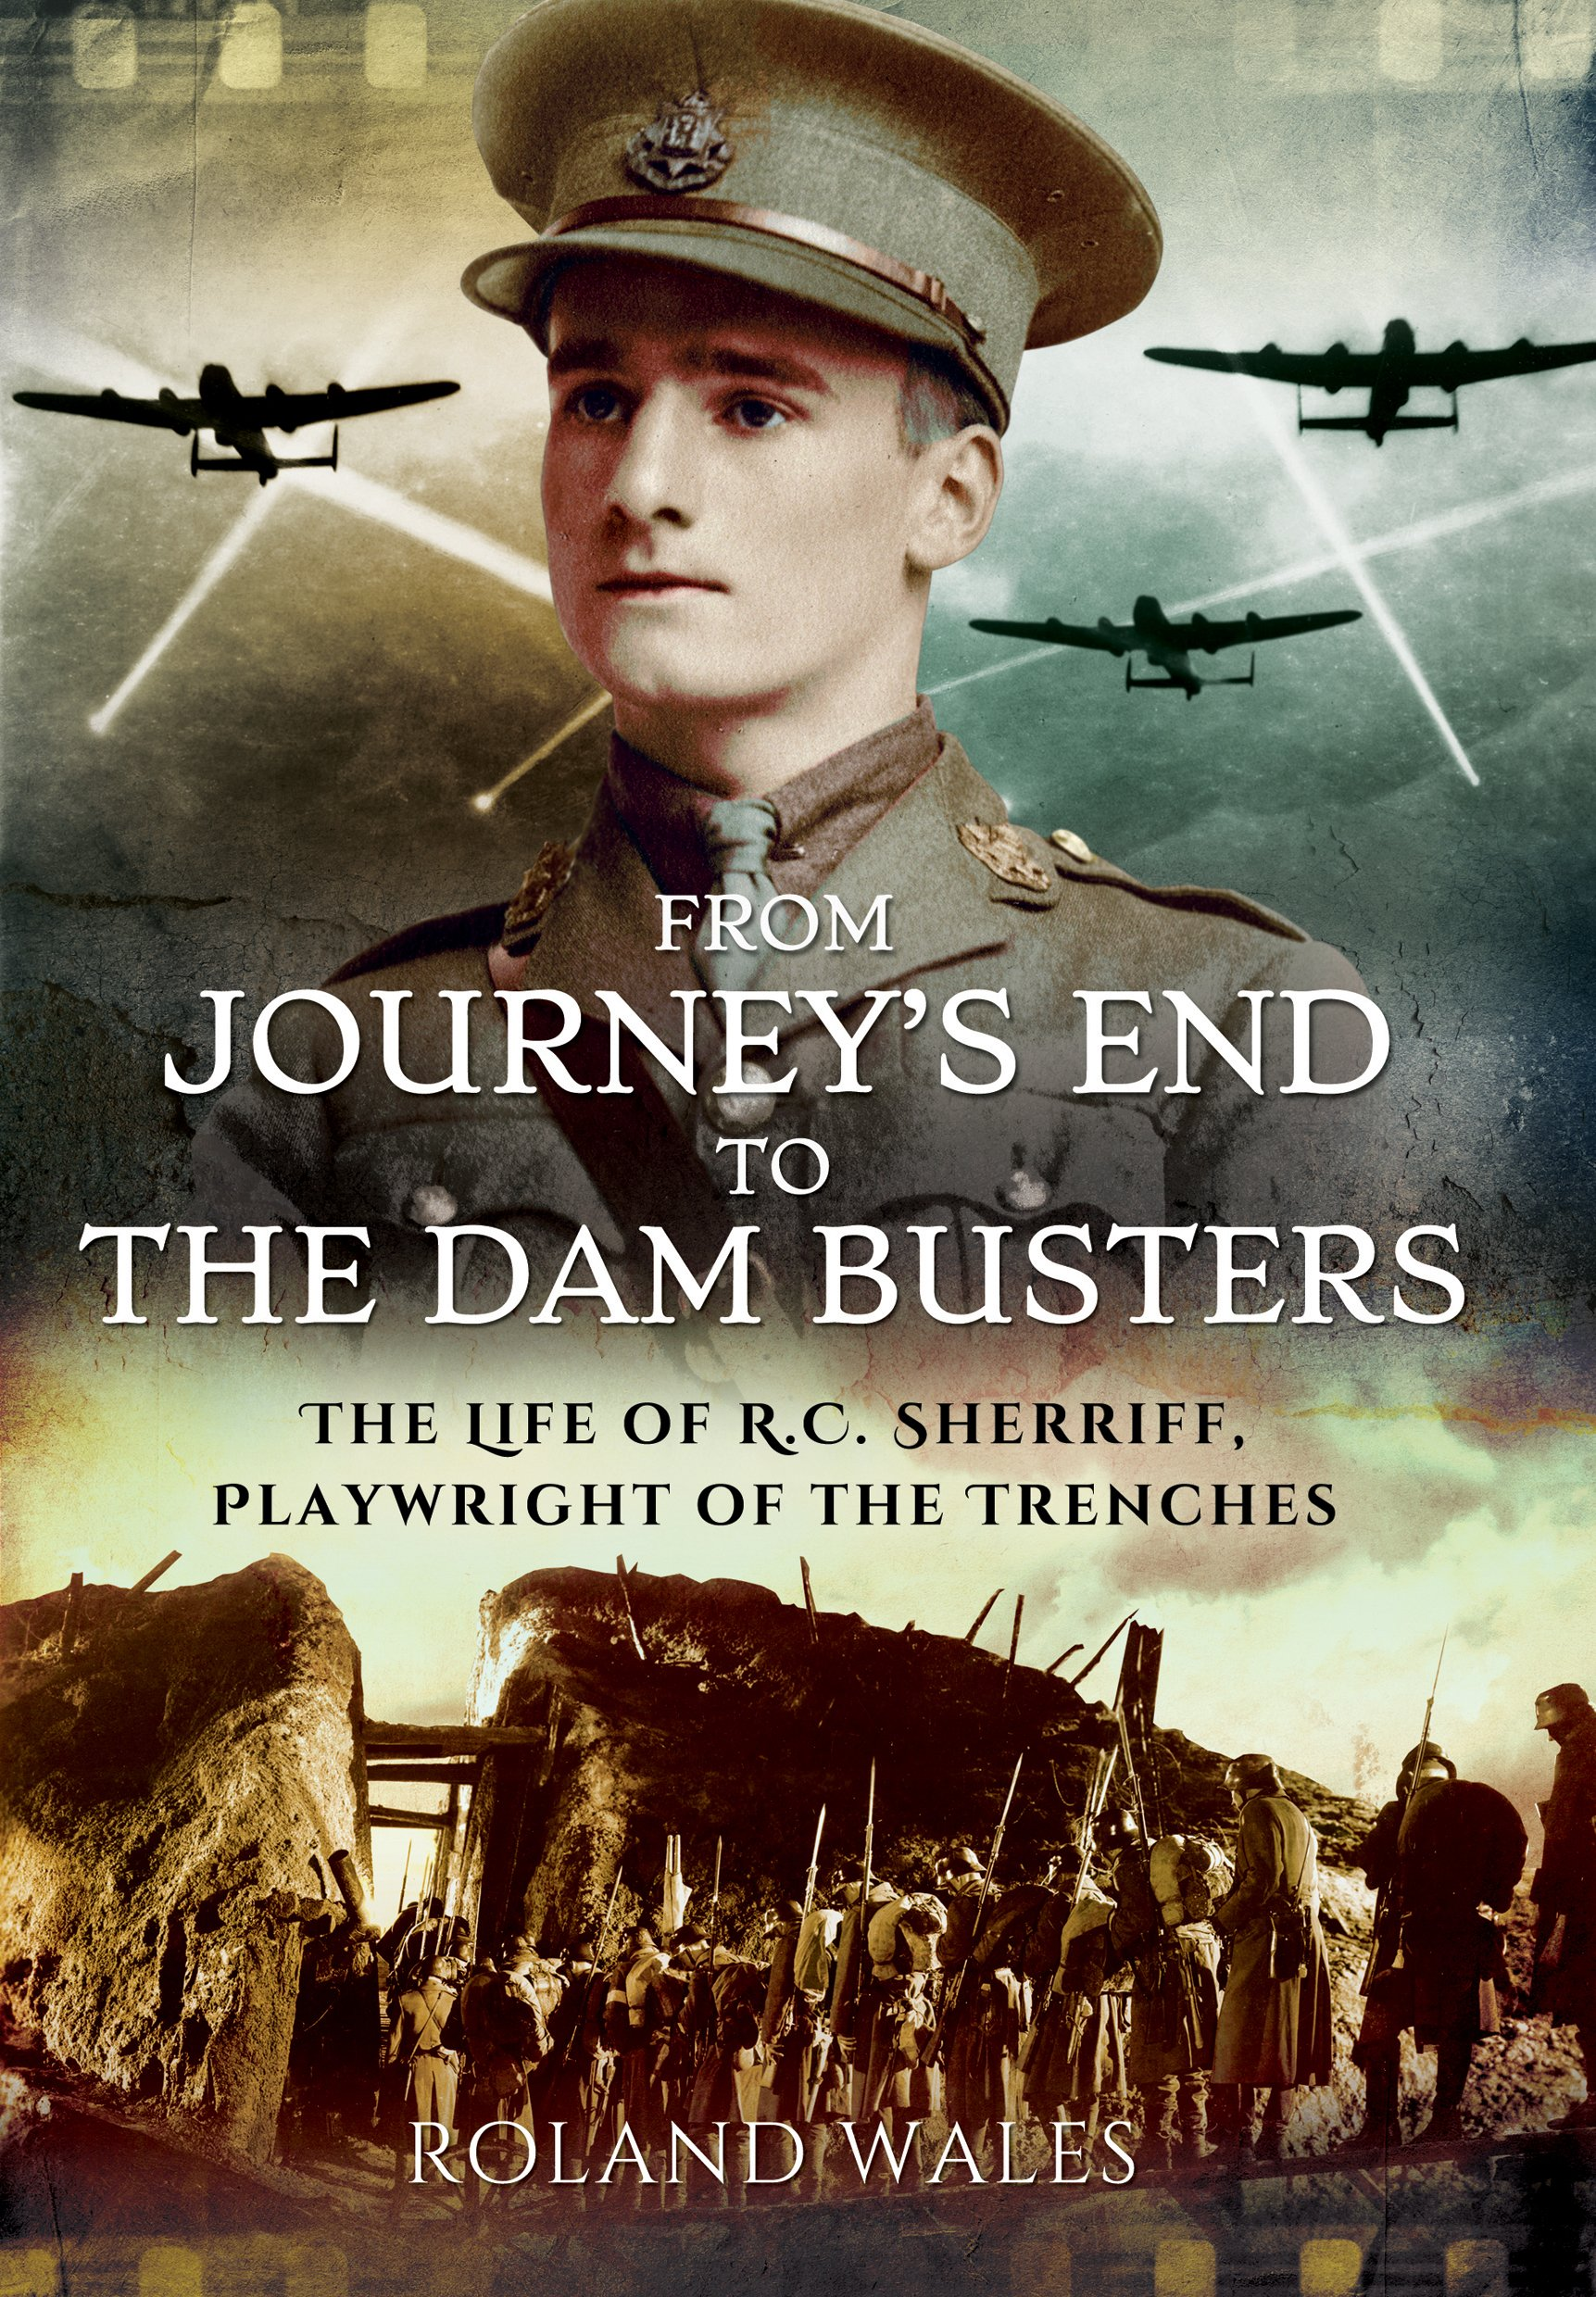 Download From Journey's End to The Dam Busters: The Life of R.C. Sherriff, Playwright of the Trenches ebook